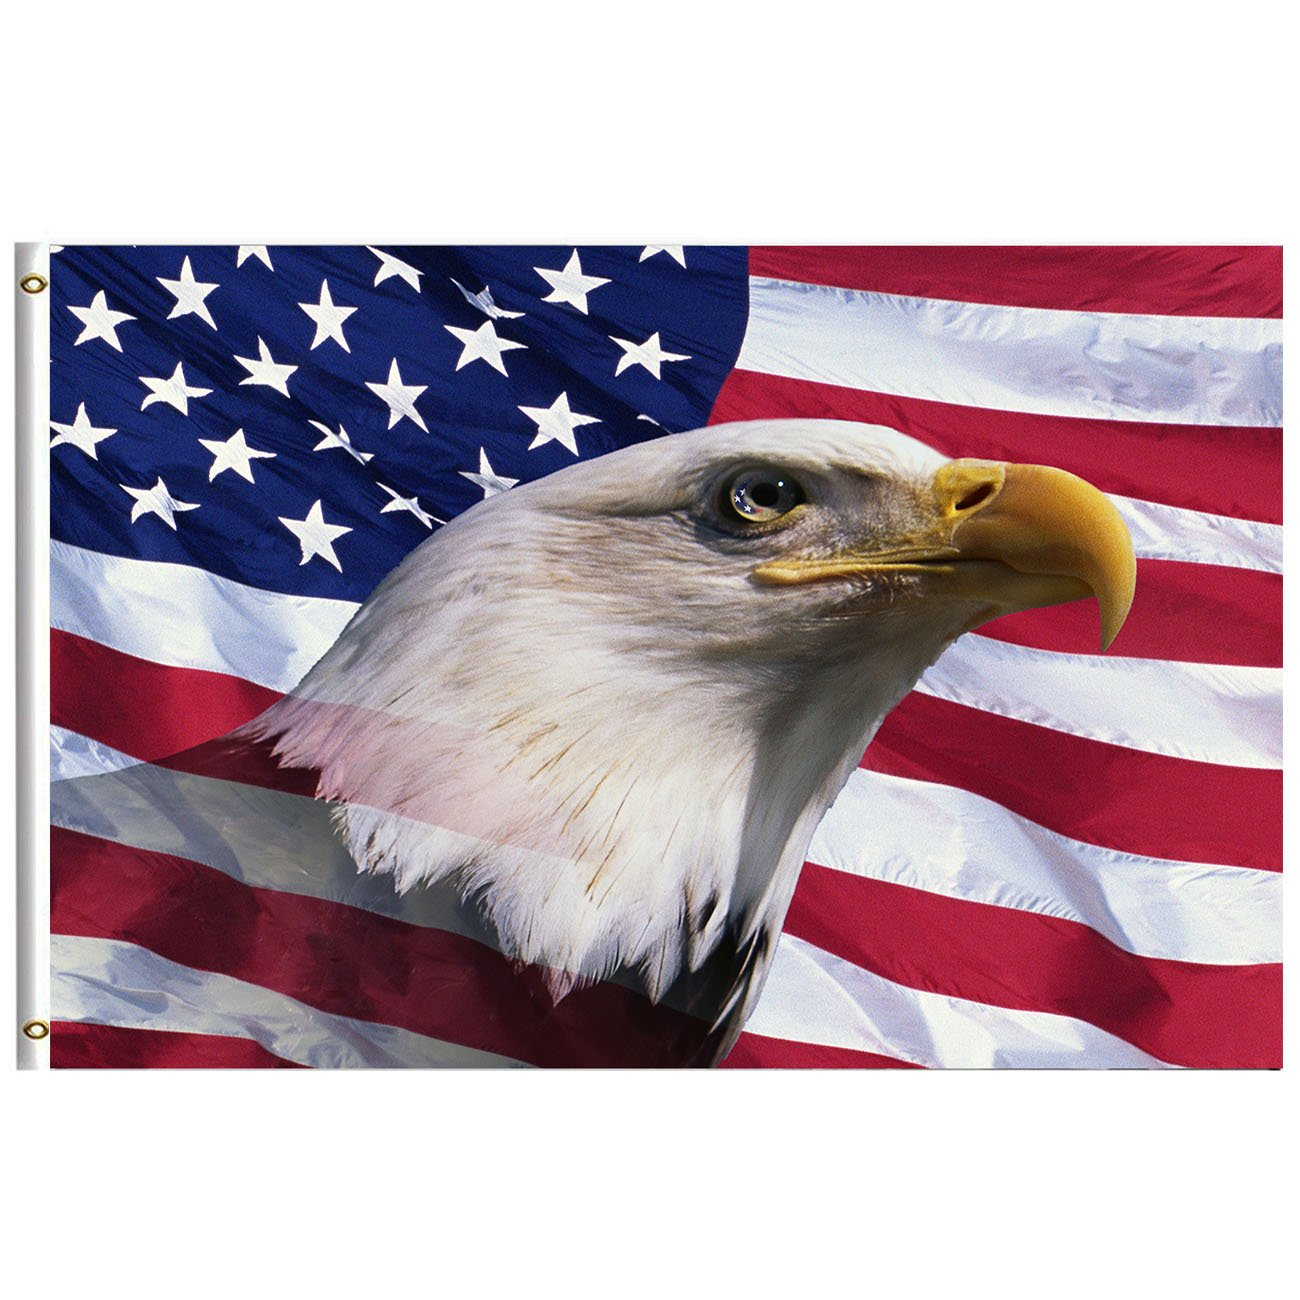 Freedom Patriotic Bald Eagle American Flag 3x5 Feet With Brass Grommet Double Stitch America Usa Flag Labor Columbus Veterans Day Banner Garden Flag House Breeze Decorations For Indoor Outdoor Home Amazon In Garden